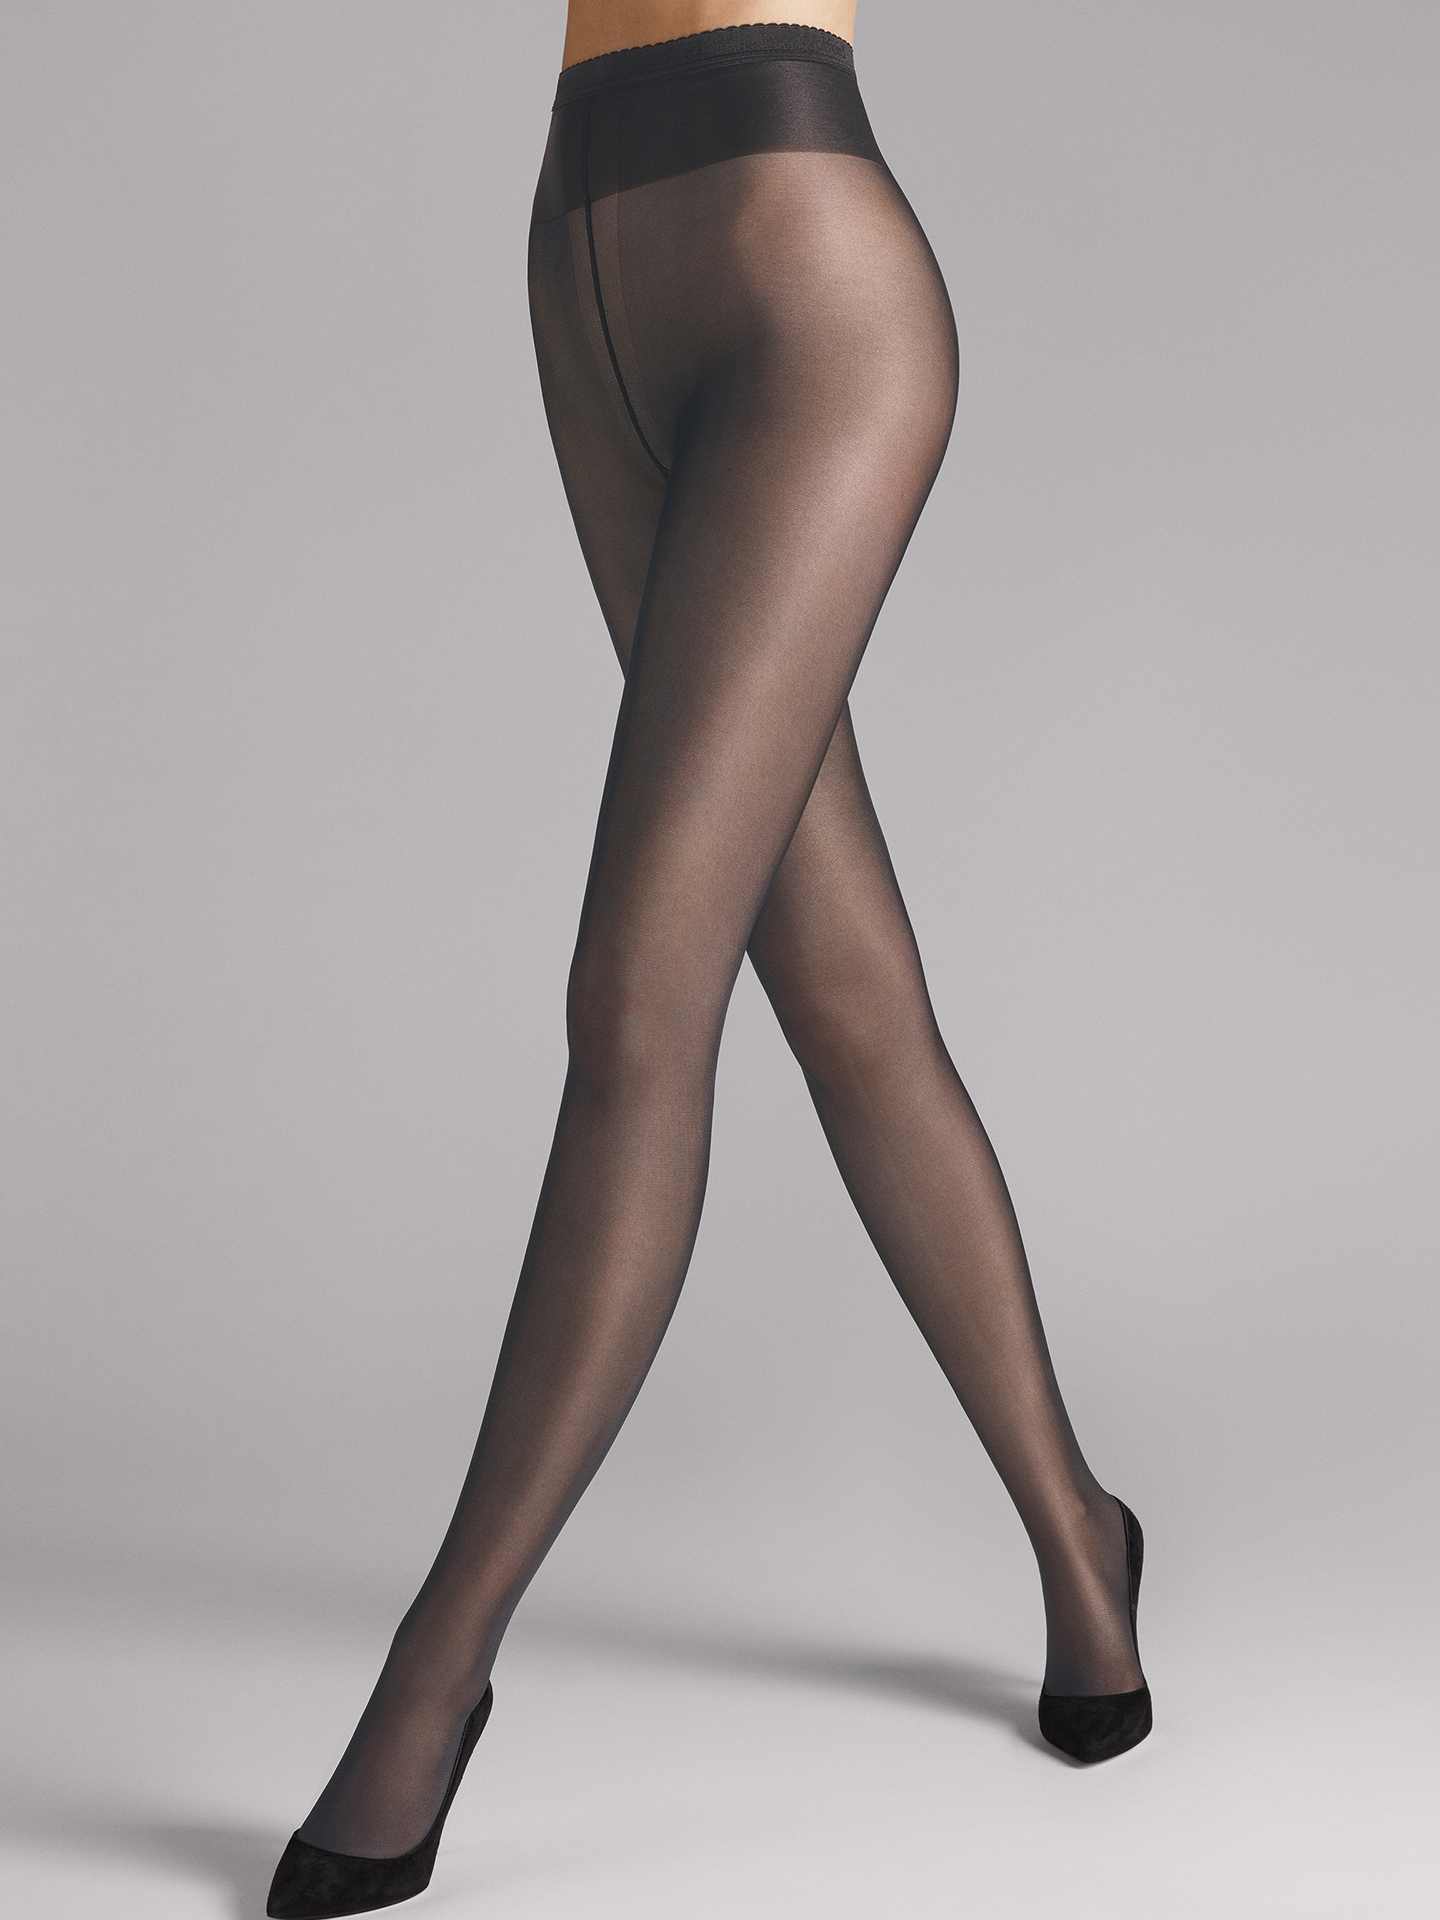 Wolford Apparel & Accessories > Clothing > Collant Neon 40 - 7221 - L